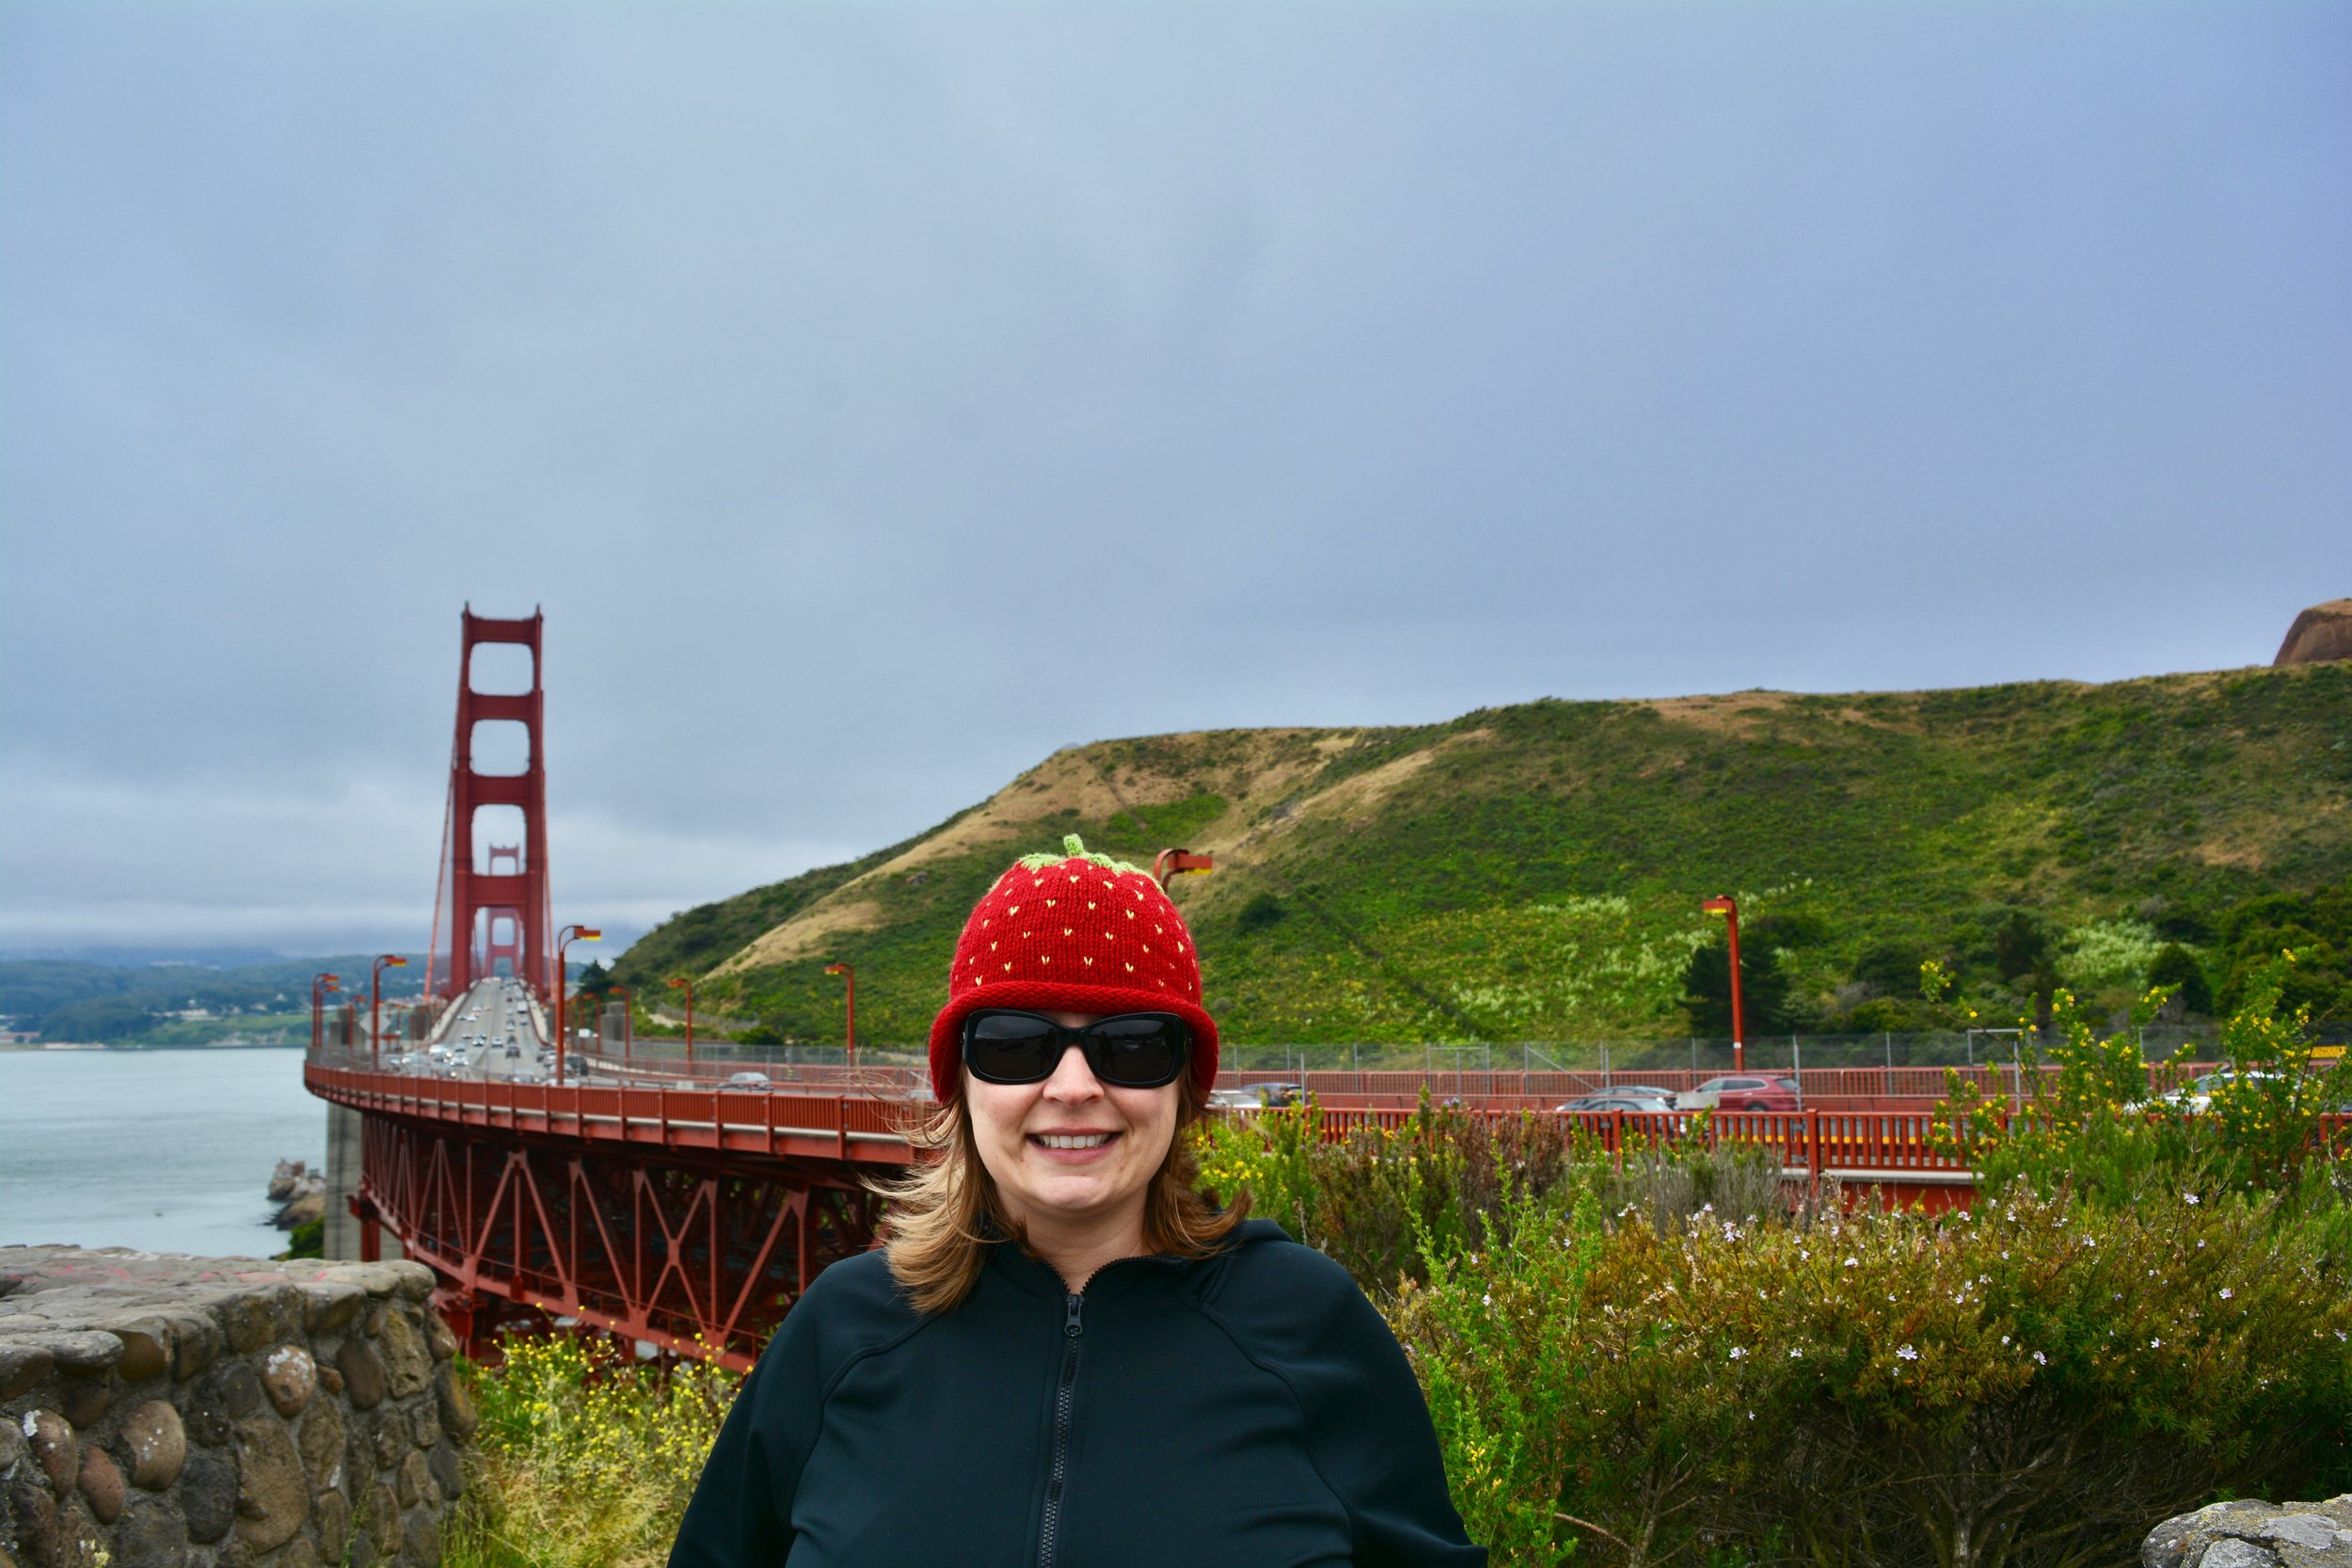 Kerri at the Golden Gate Bridge